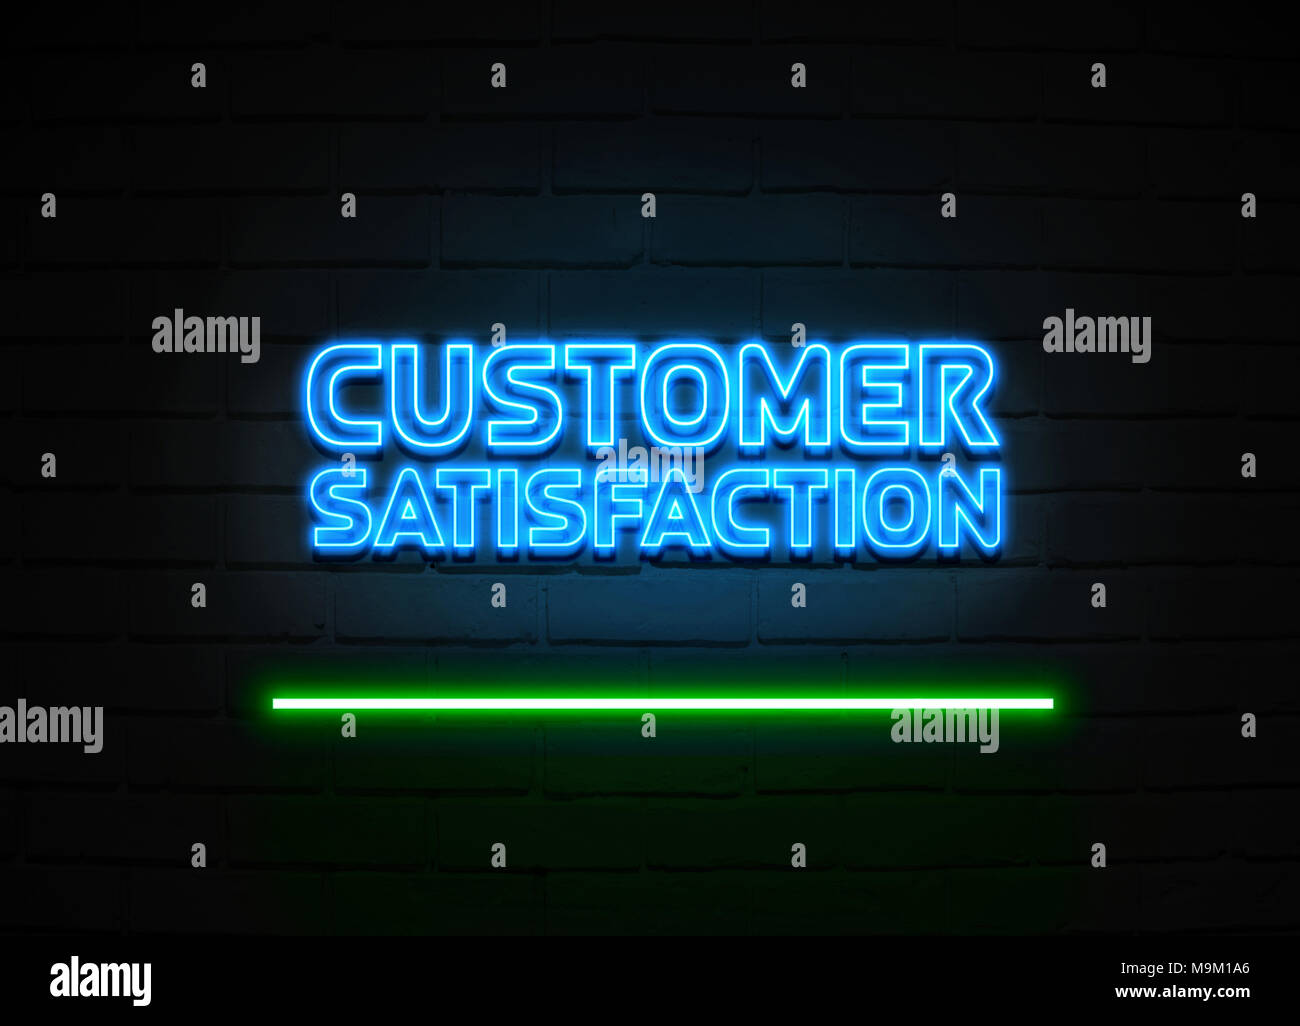 Customer Satisfaction neon sign - Glowing Neon Sign on brickwall wall - 3D rendered royalty free stock illustration. - Stock Image